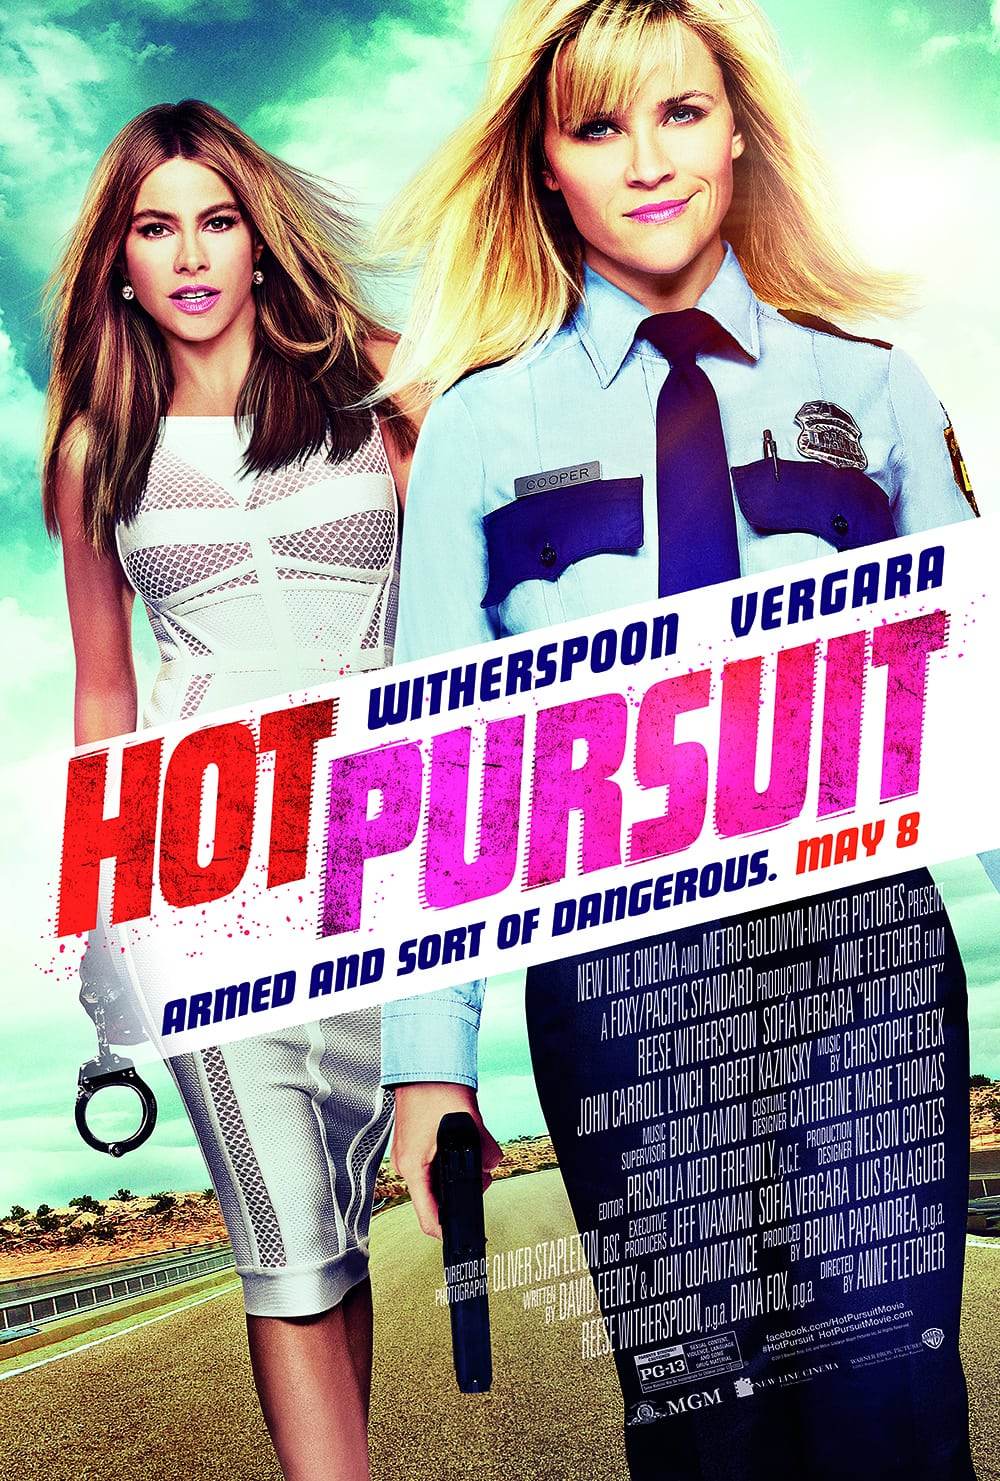 Hot Pursuit Is Coming To Theaters Soon! (PLUS Giveaway) #HotMamas #HotPursuit #ad